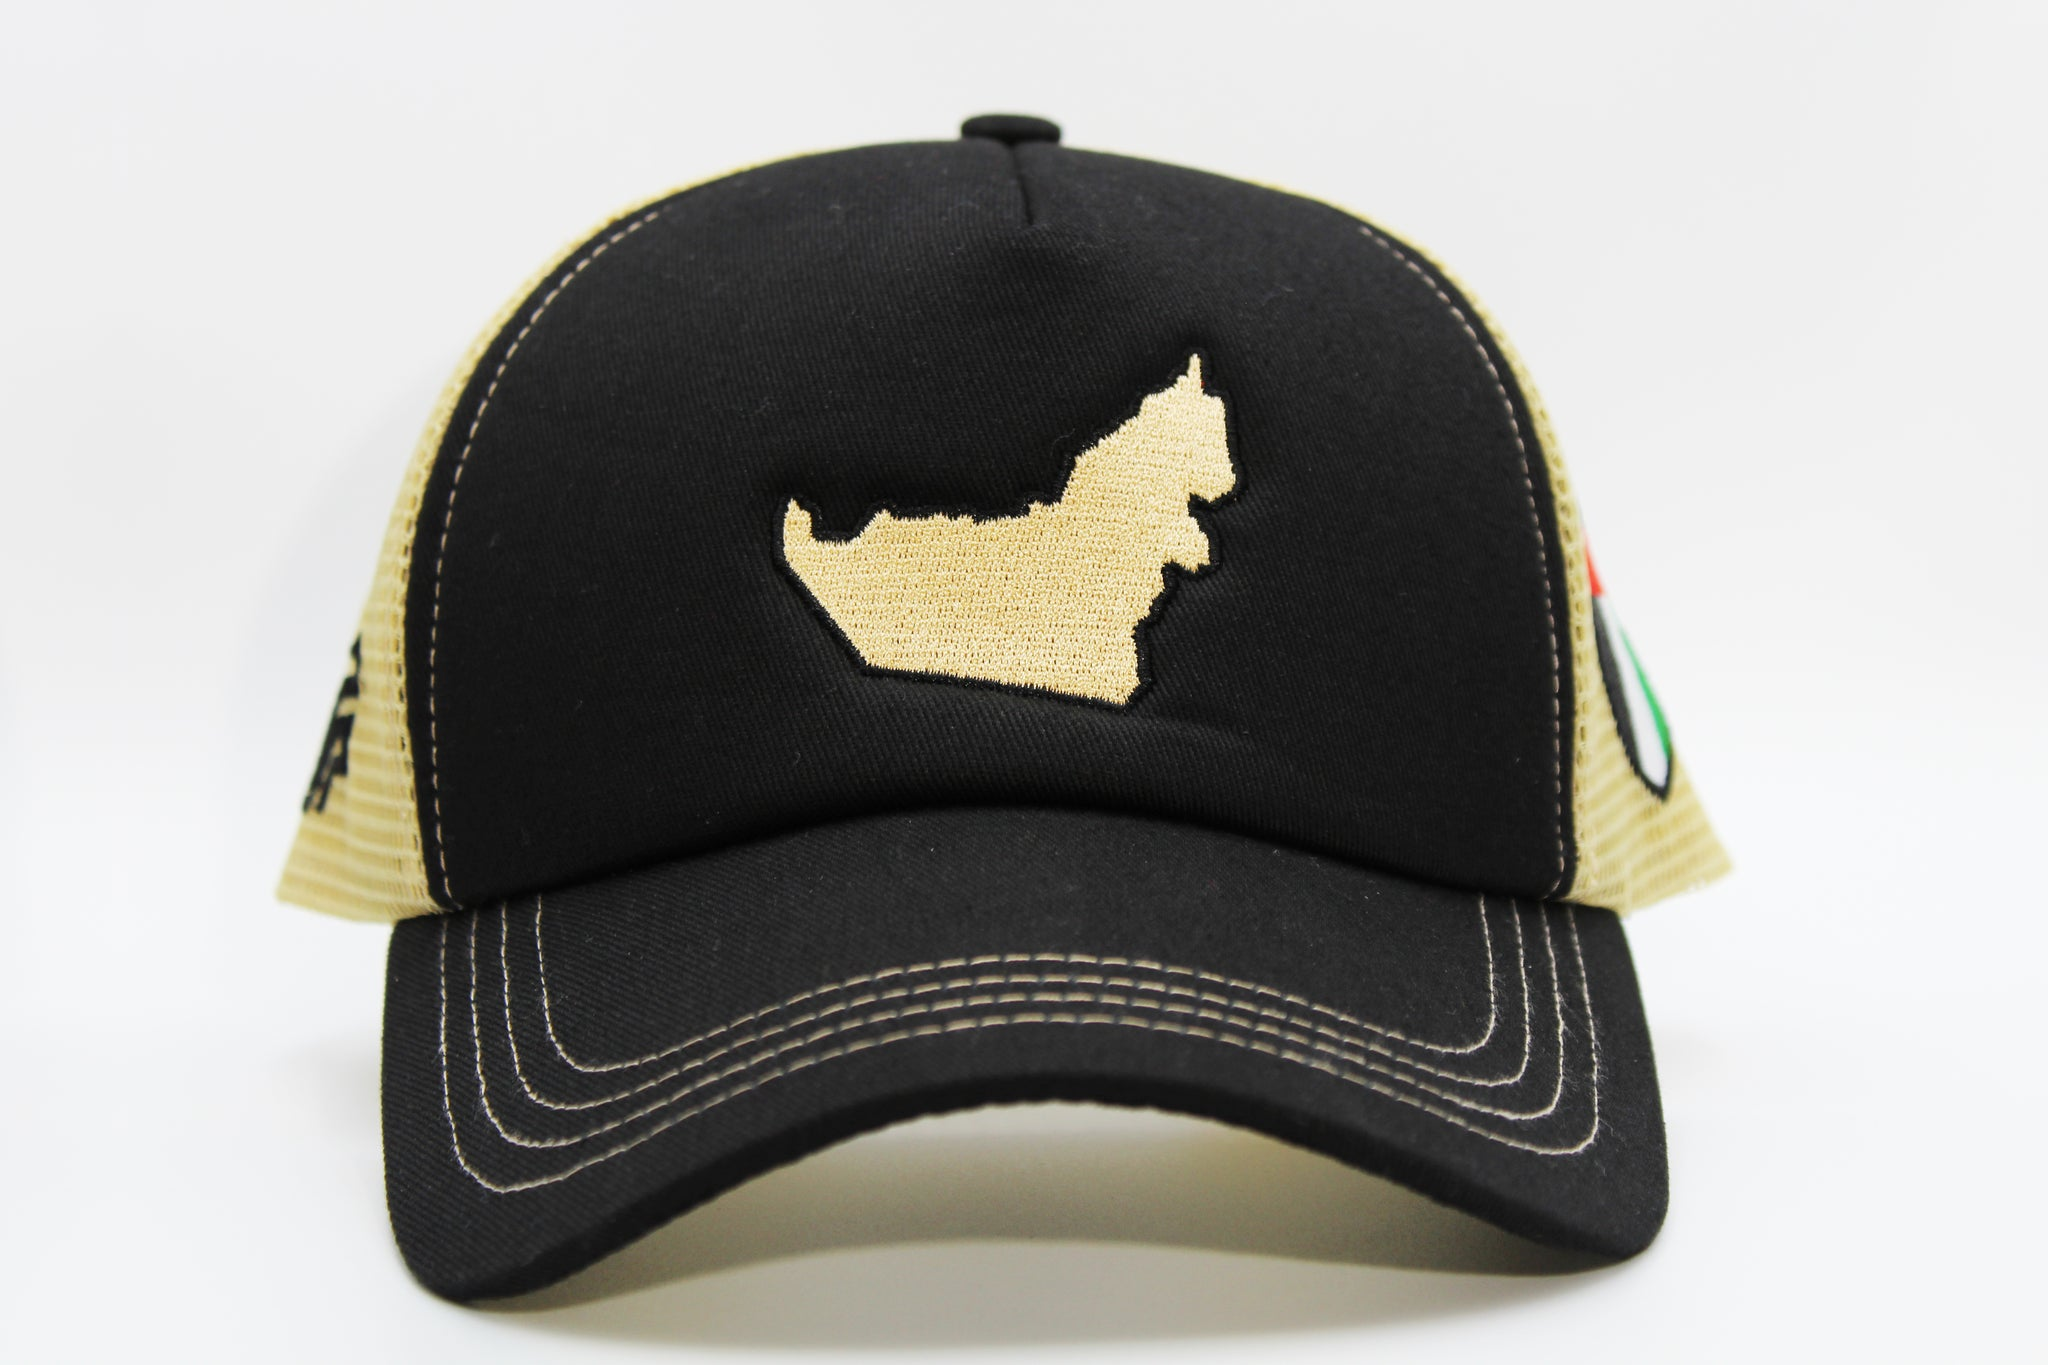 The UAE's Map/Flag Logos Cap - Black/Gold